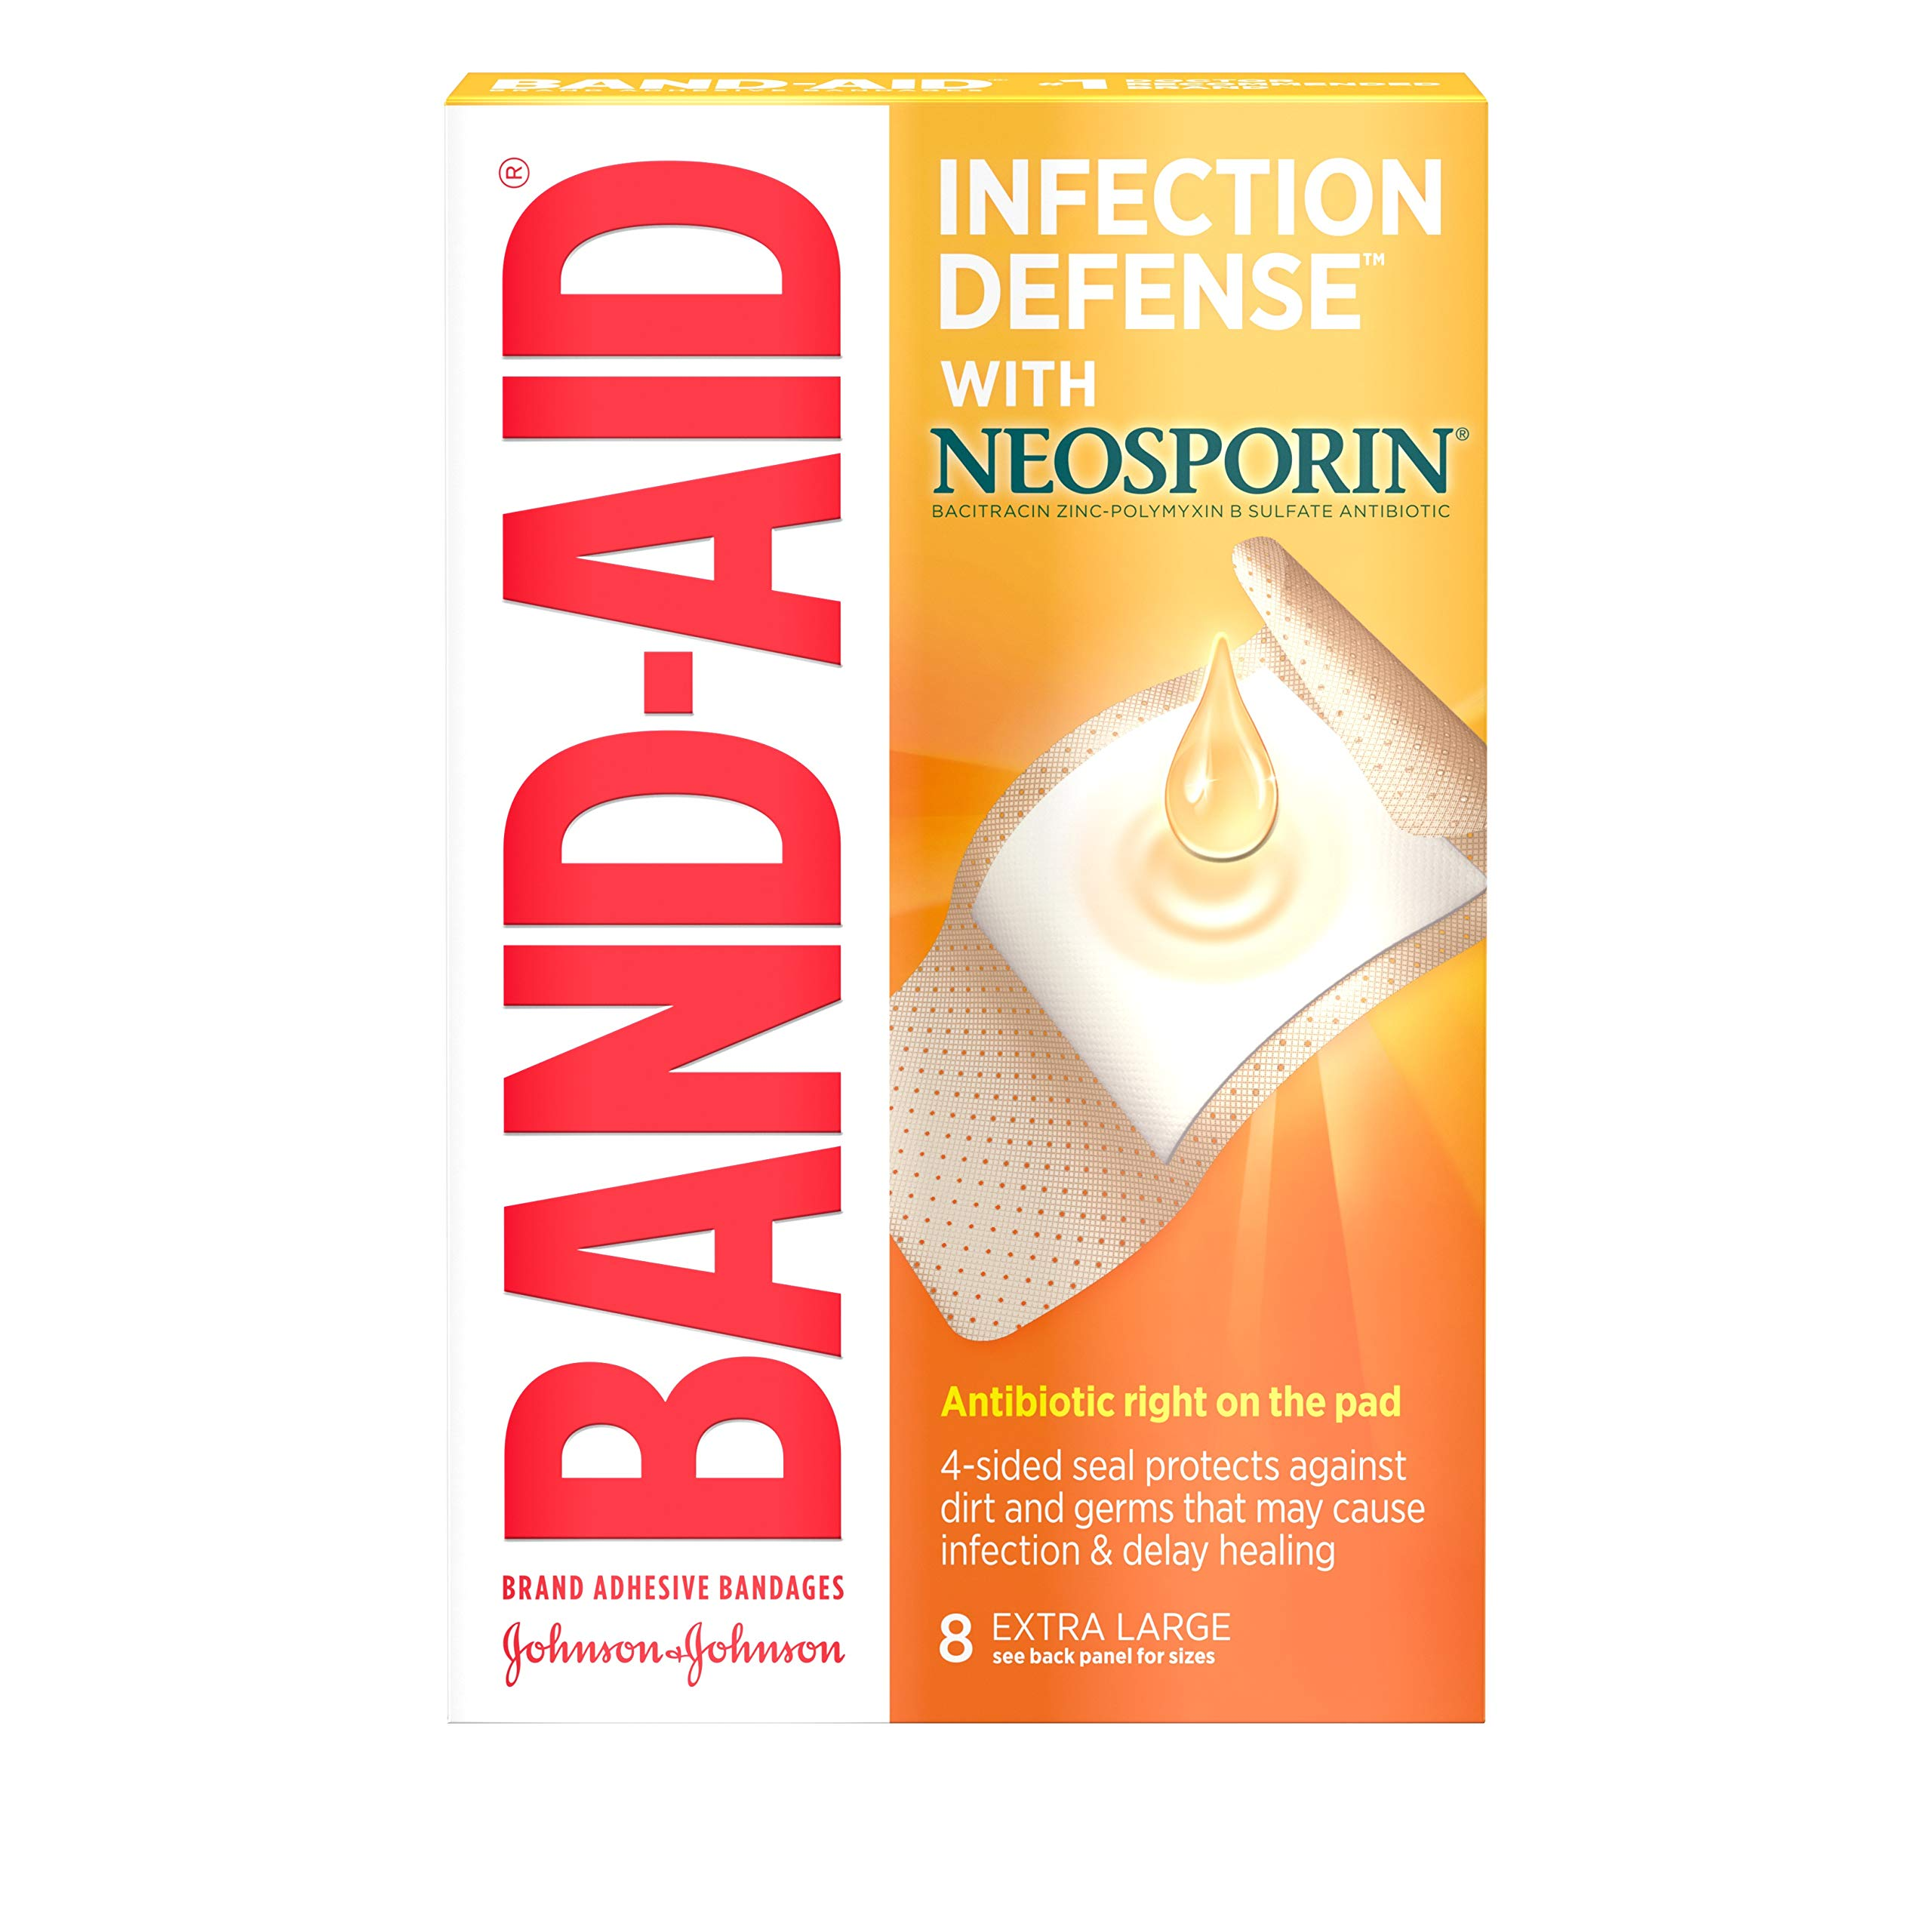 Band-Aid Brand Adhesive Bandages Infection Defense with Neosporin Antibiotic Ointment, for Wound Care and First Aid, Extra Large, 8 ct